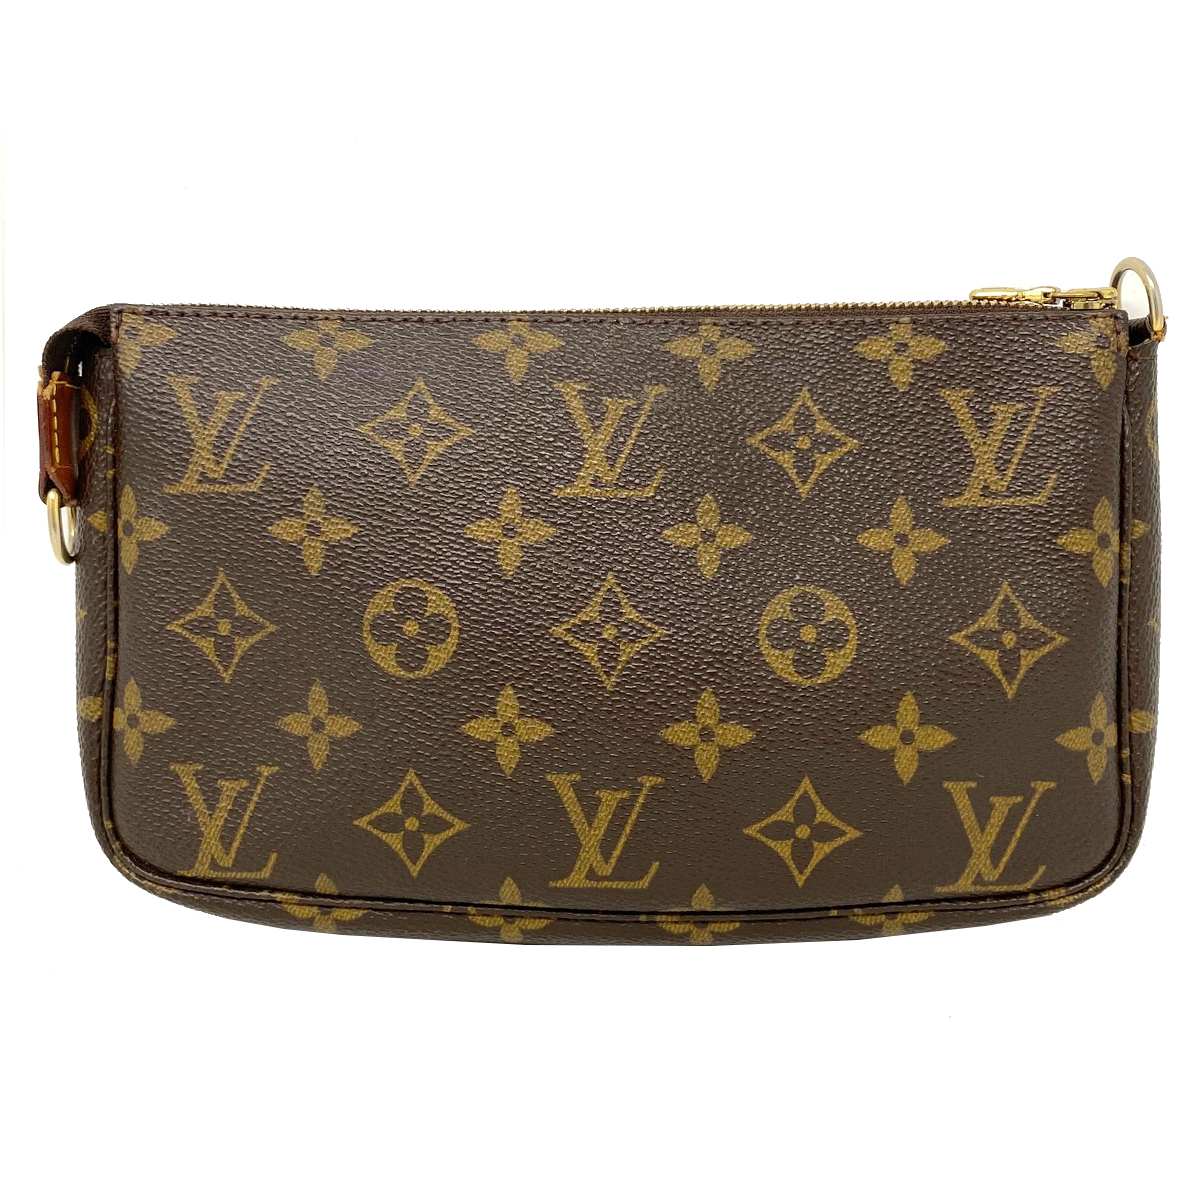 Louis Vuitton Monogram Pochette Pouch Clutch Handbag